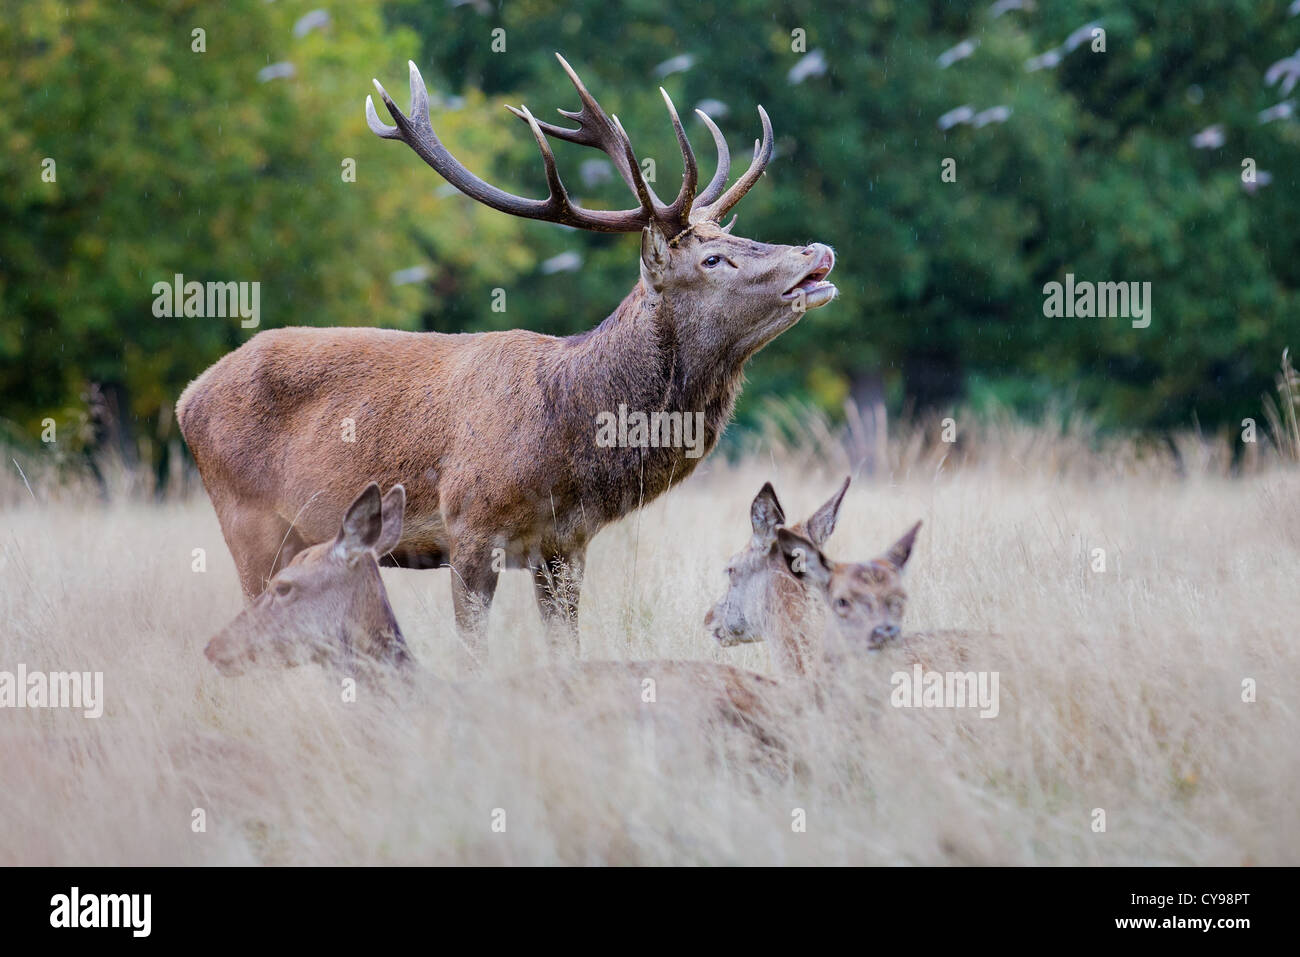 Red deer stag (Cervus elaphus) bellowing in the rain during rutting season, Richmond, England - Stock Image